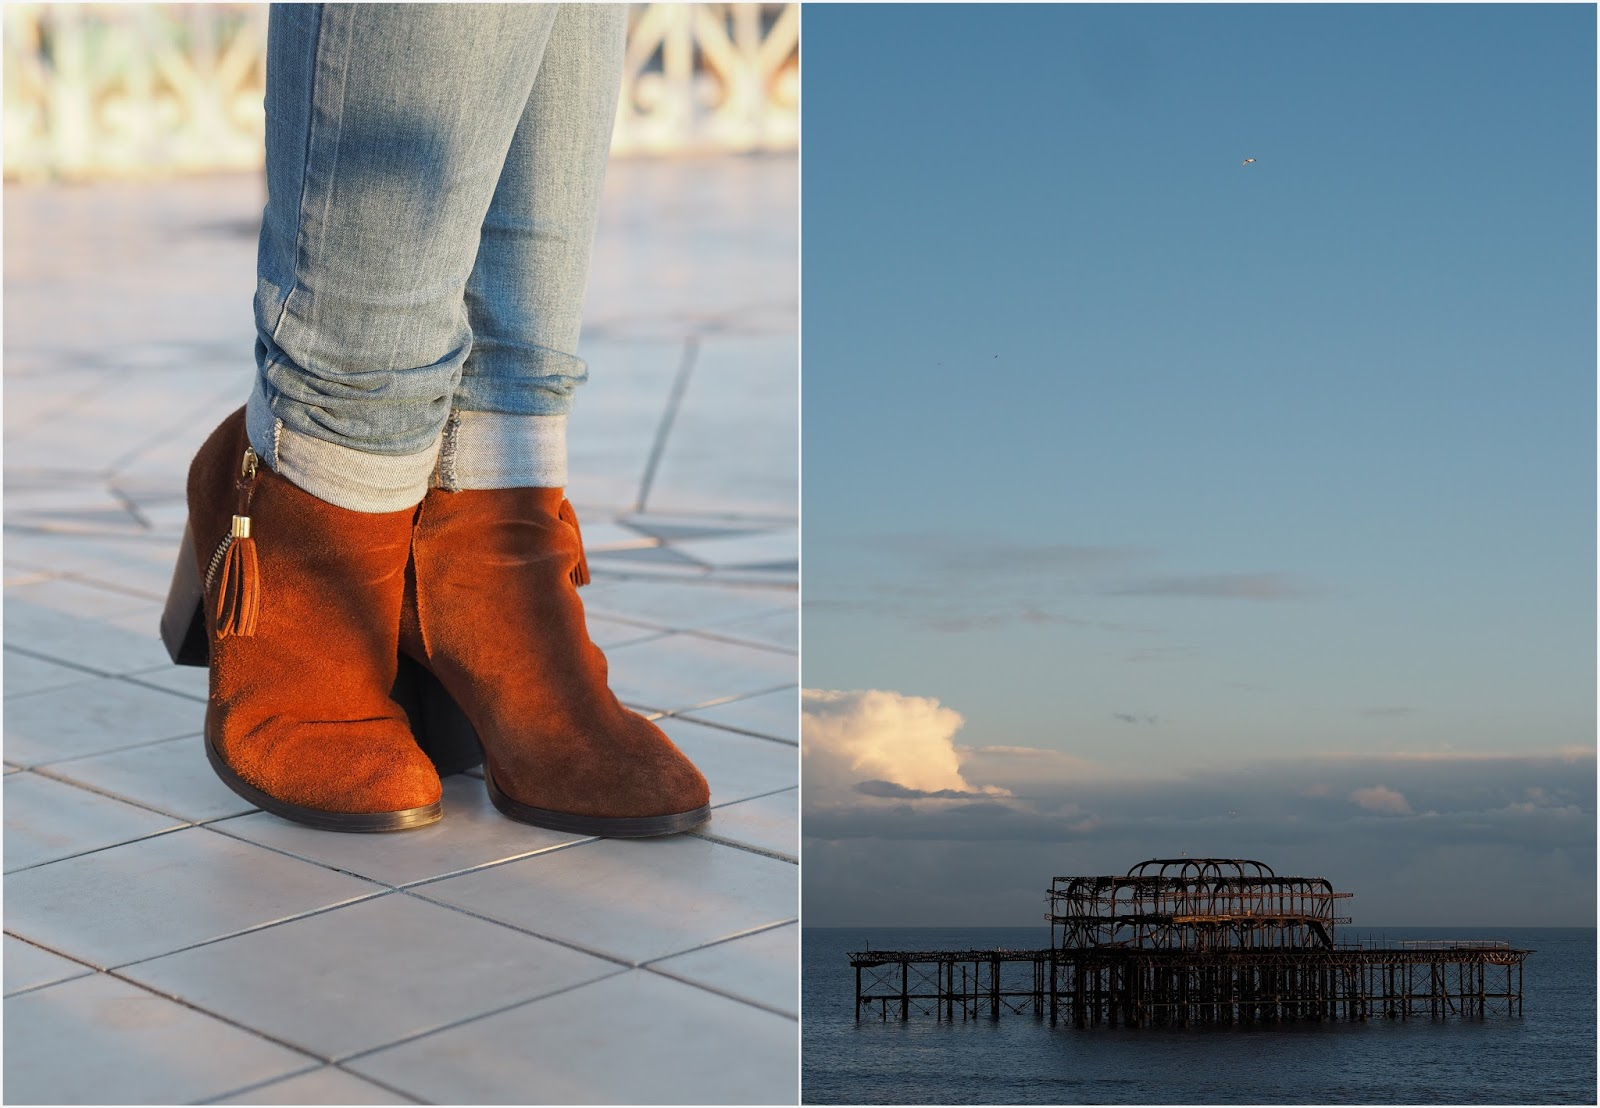 Photo Collage - Tan Boots // Old Pier